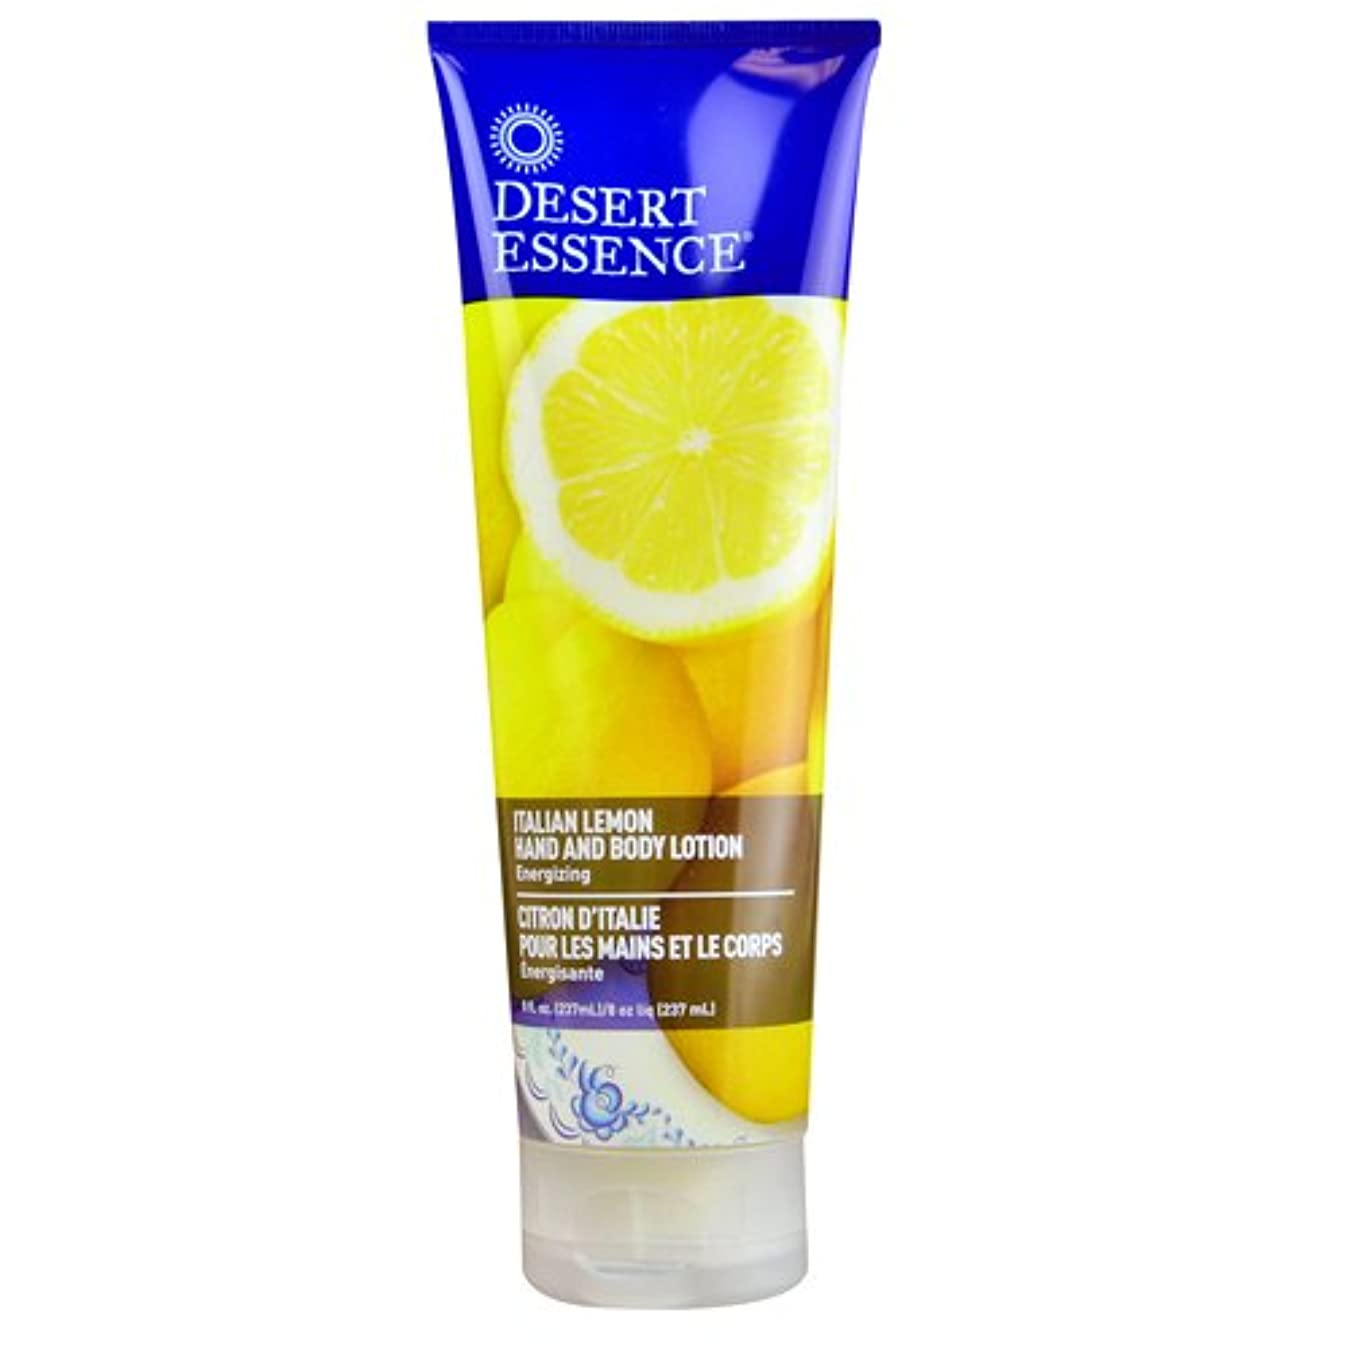 終わったスーツケース手段Desert Essence, Hand and Body Lotion, Italian Lemon, 8 fl oz (237 ml)